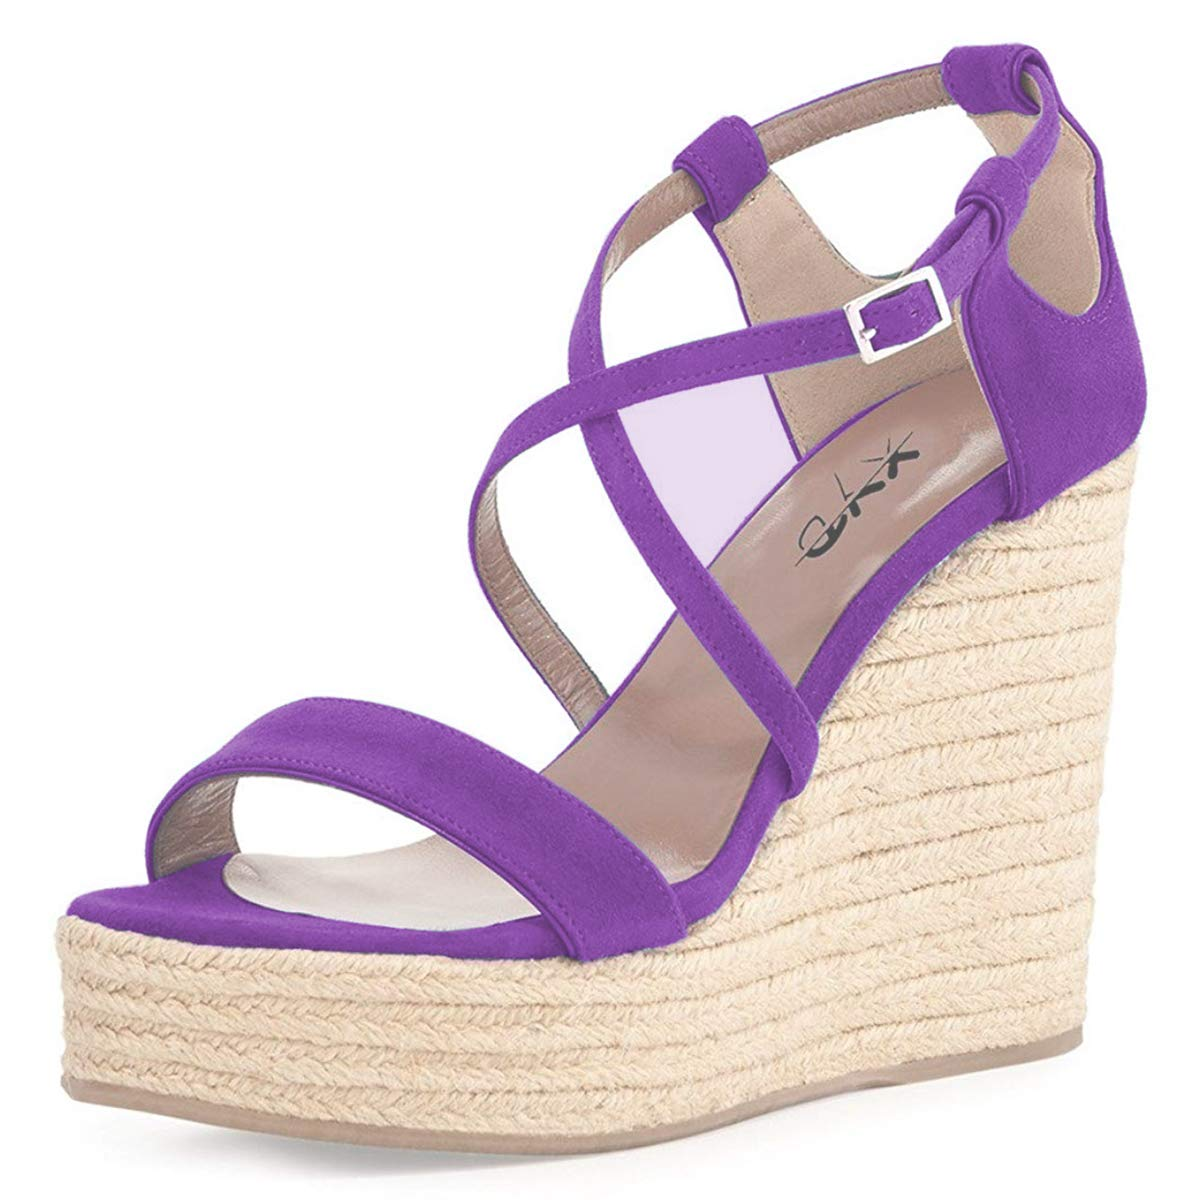 9c18047c6898 Casual summer wedges shoes open toe platform strappy espadrille sandals for  women shoes jpg 1200x1200 Lilac